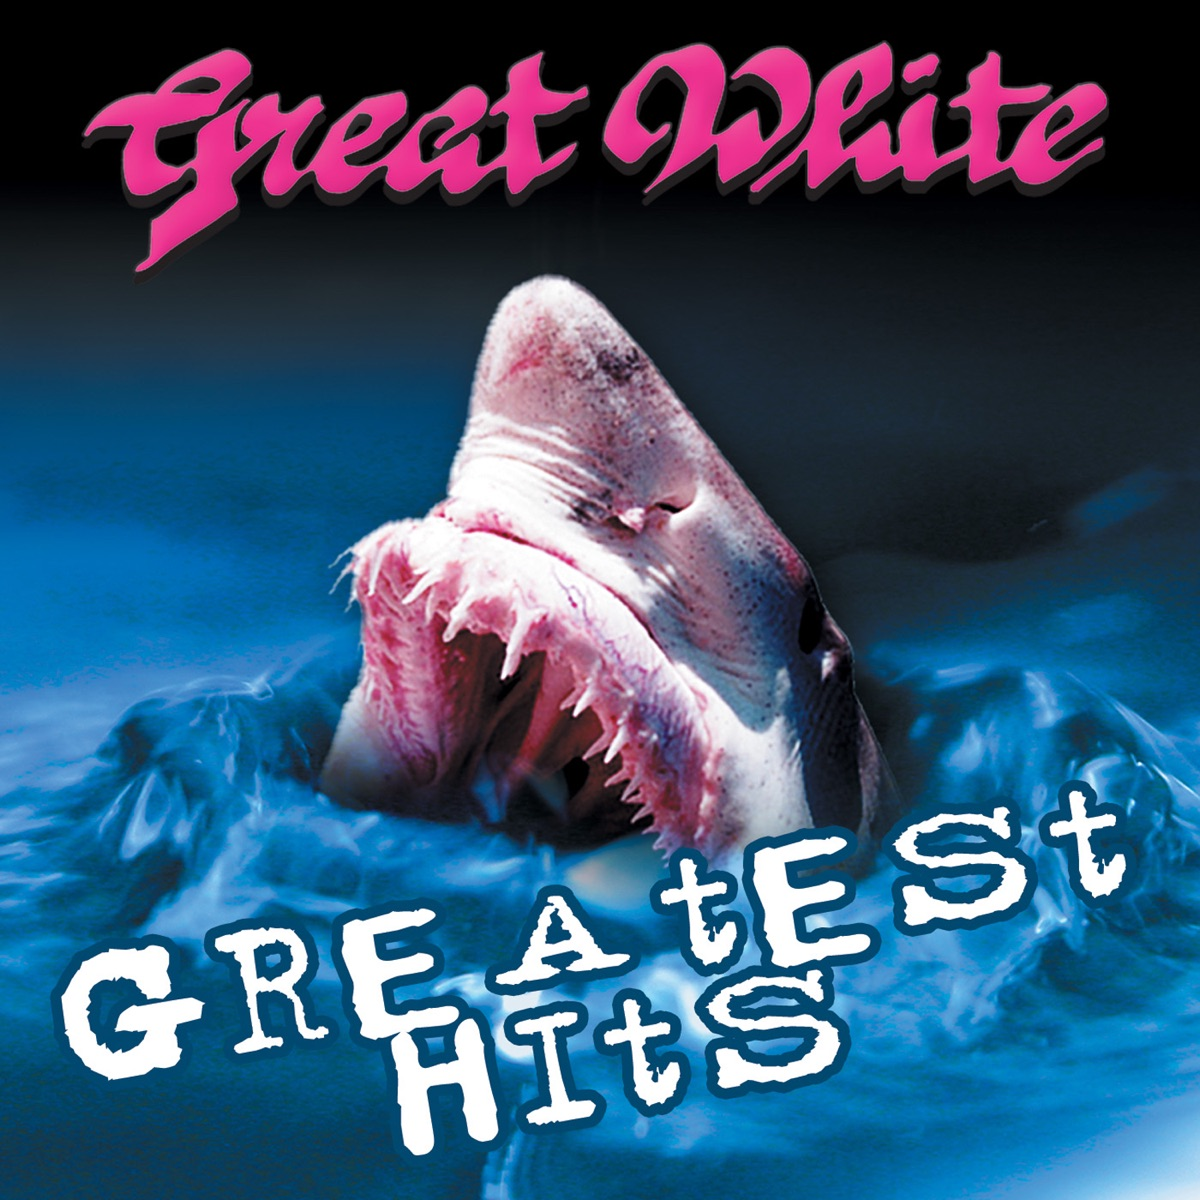 Greatest Hits Album Cover by Great White